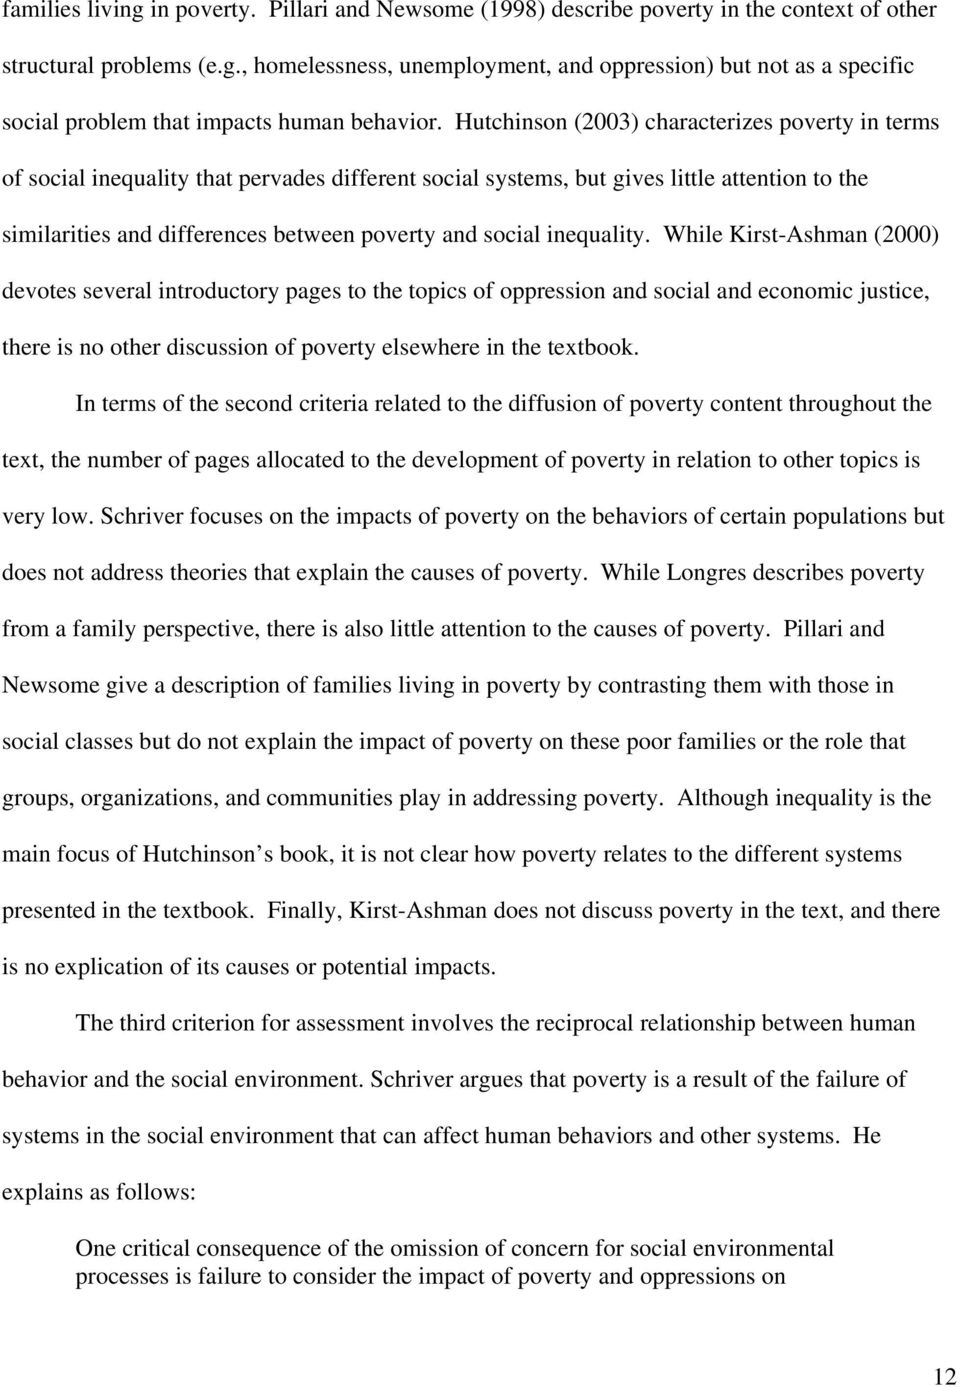 inequality. While Kirst-Ashman (2000) devotes several introductory pages to the topics of oppression and social and economic justice, there is no other discussion of poverty elsewhere in the textbook.